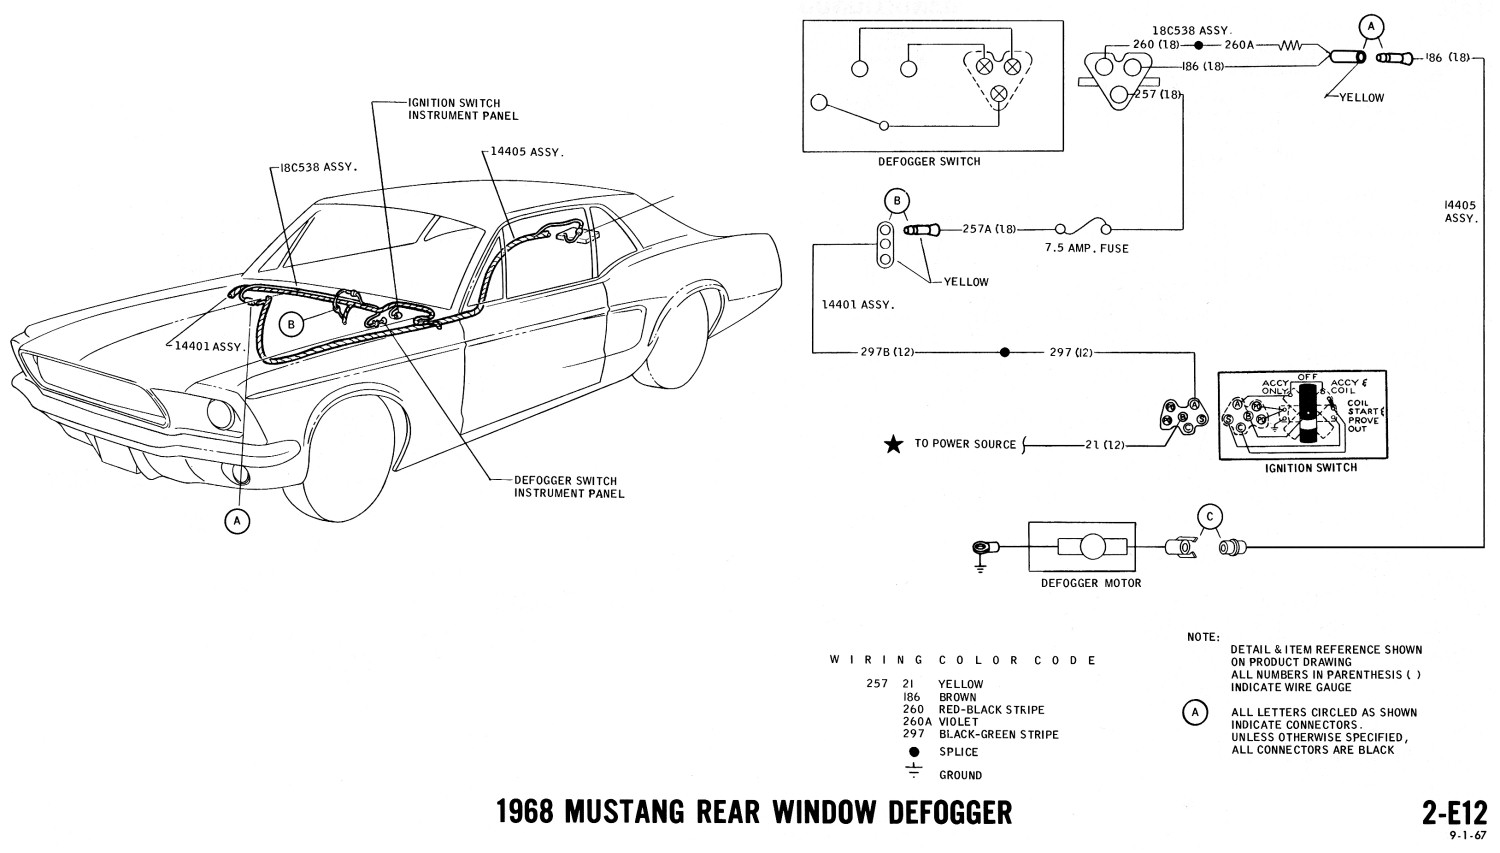 1966 Mustang 289 Wiring Diagram Free For You Ford F100 Engine Picture Vacuum Get Image Alternator Coupe